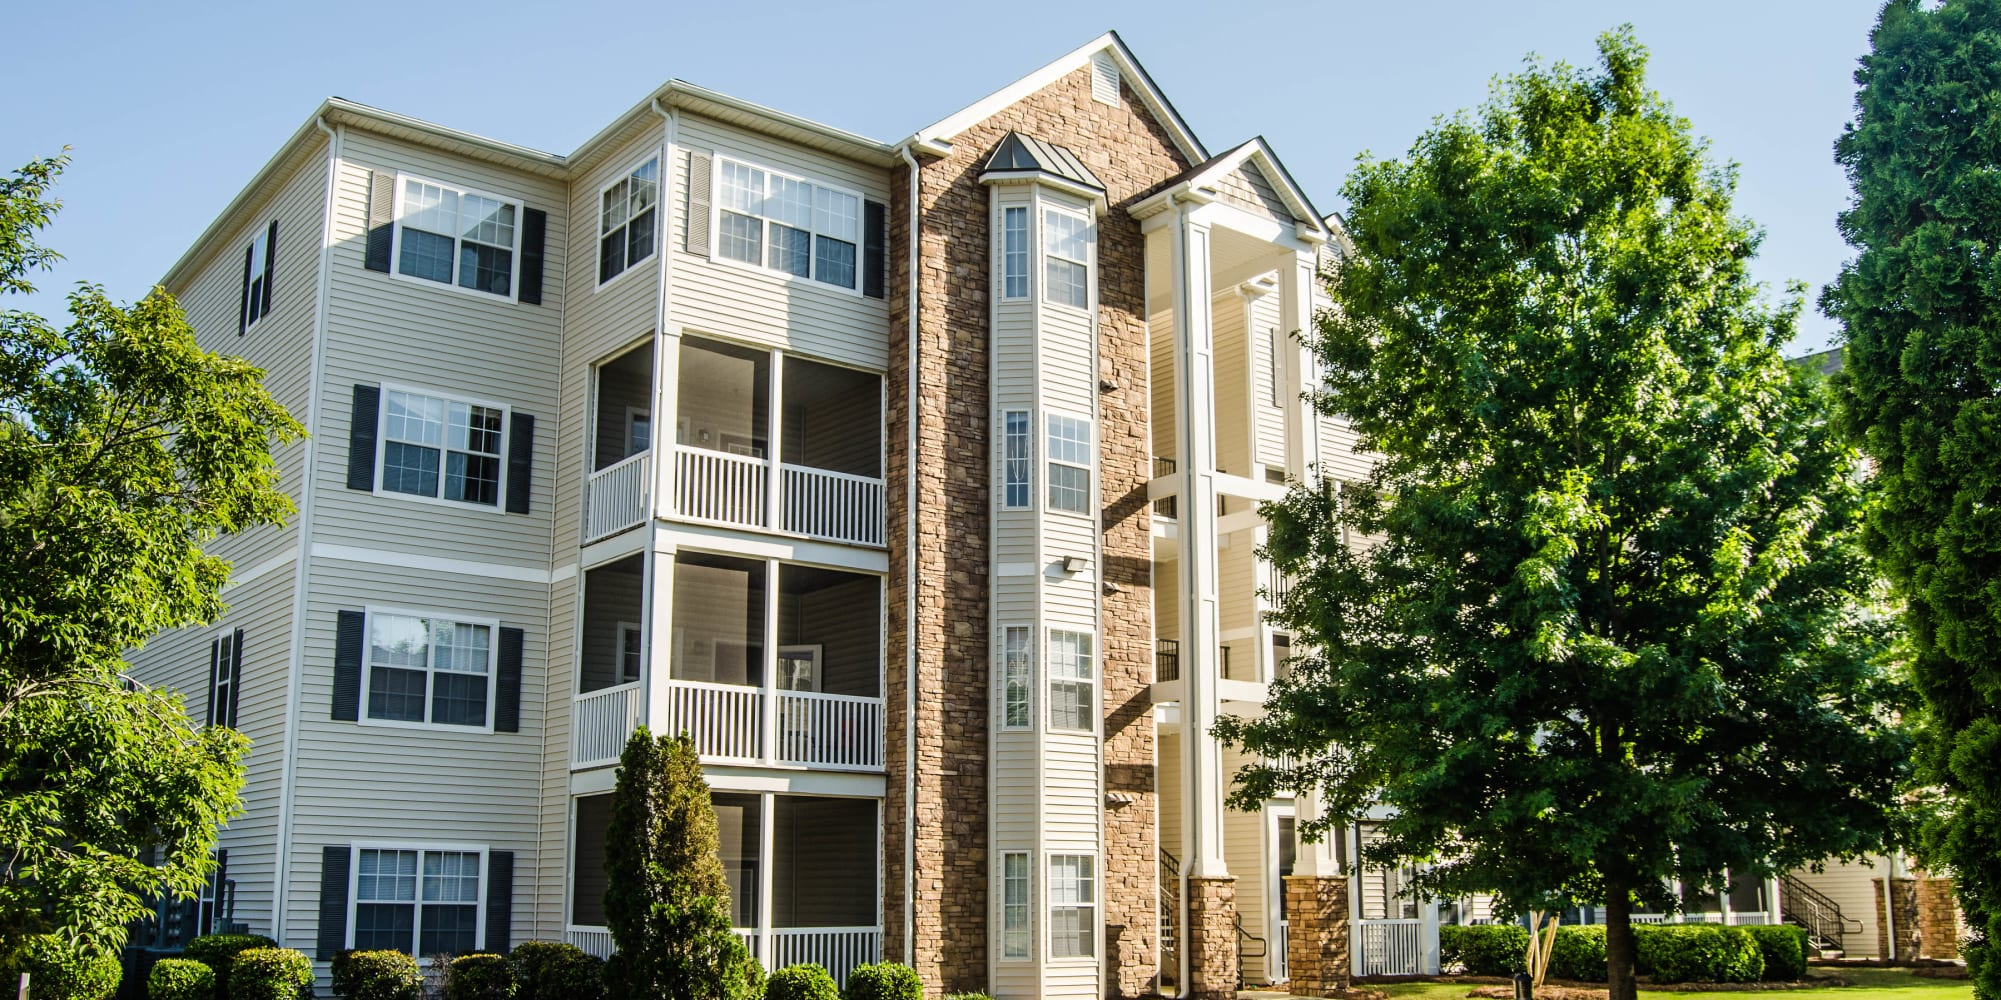 Lullwater at Saluda Pointe Apartments in Lexington, South Carolina